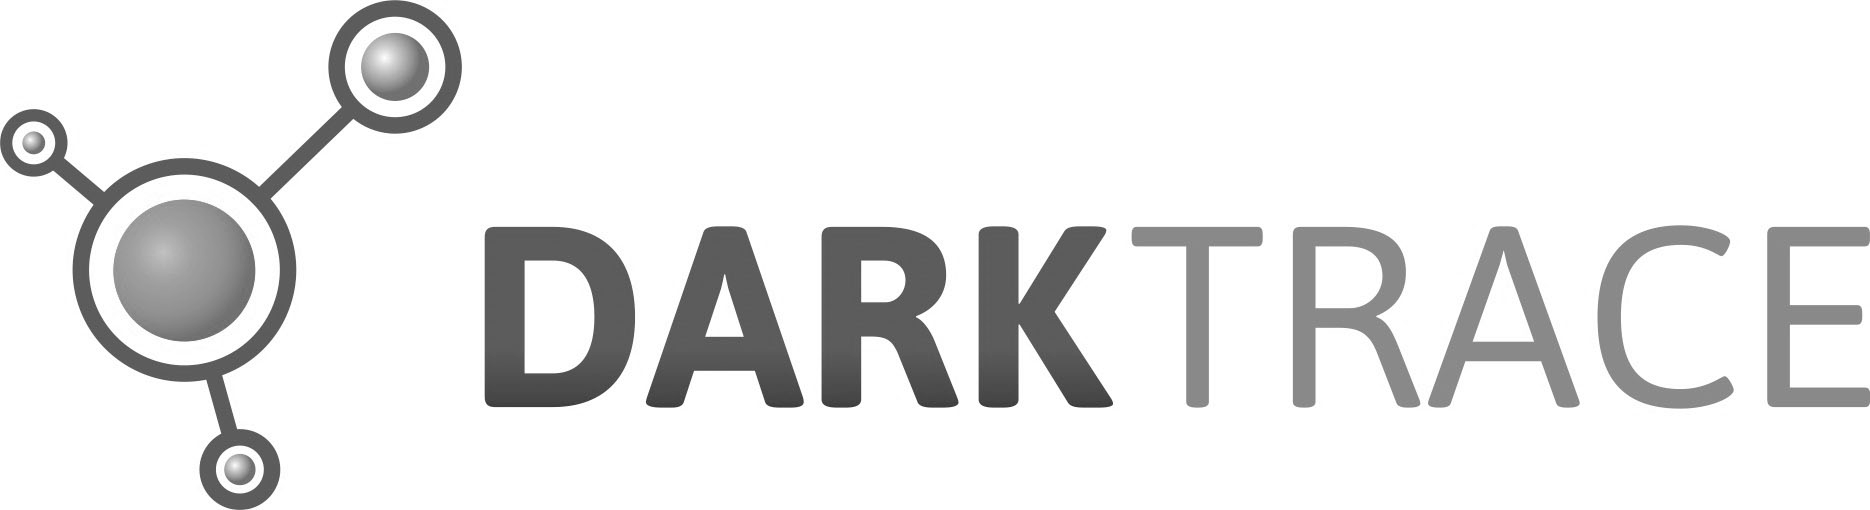 Dark Trace Logo.png